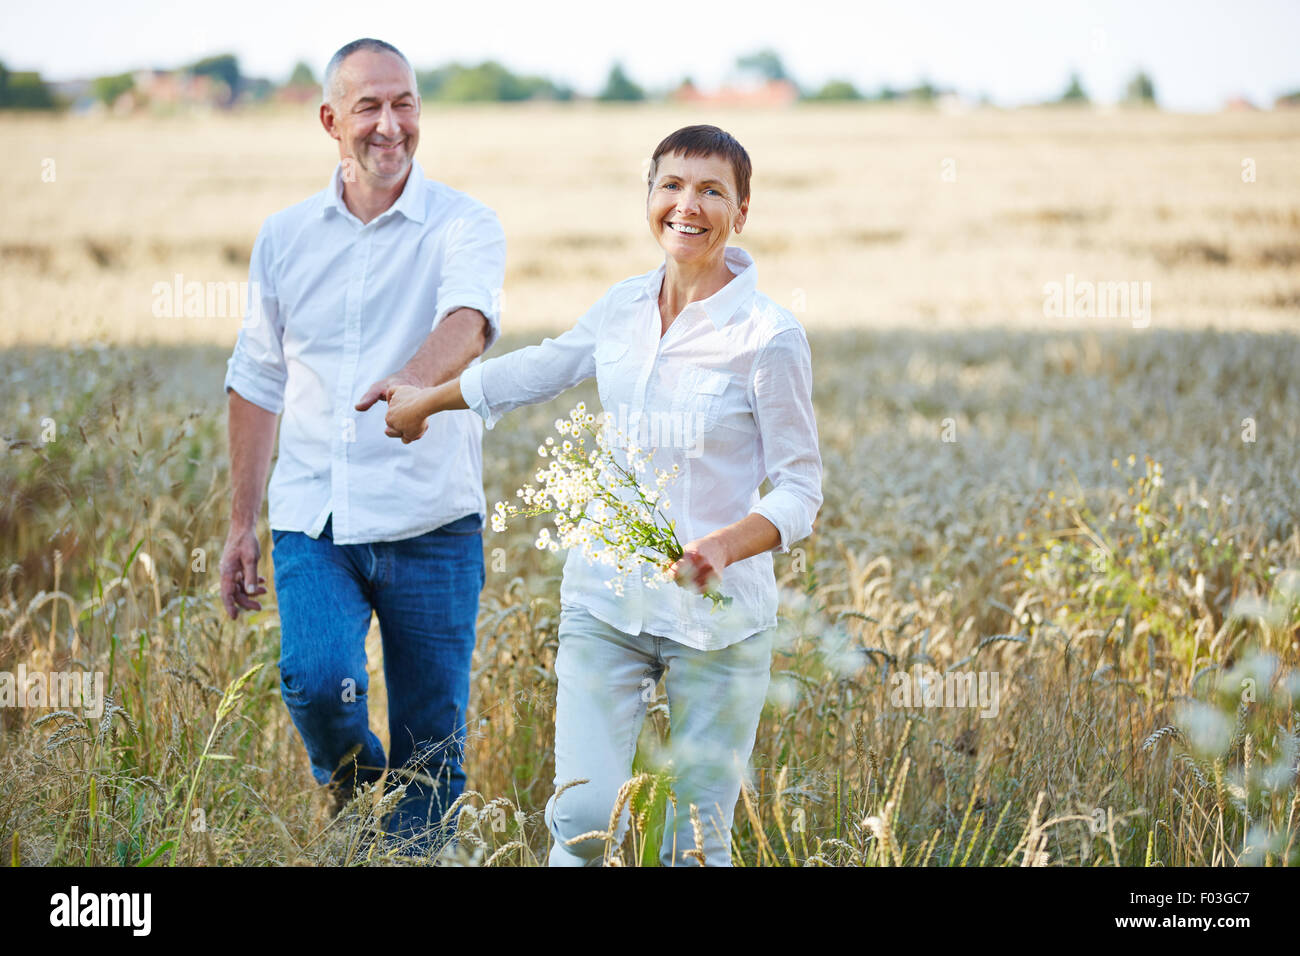 Senior couple with flowers walking in nature in summer - Stock Image